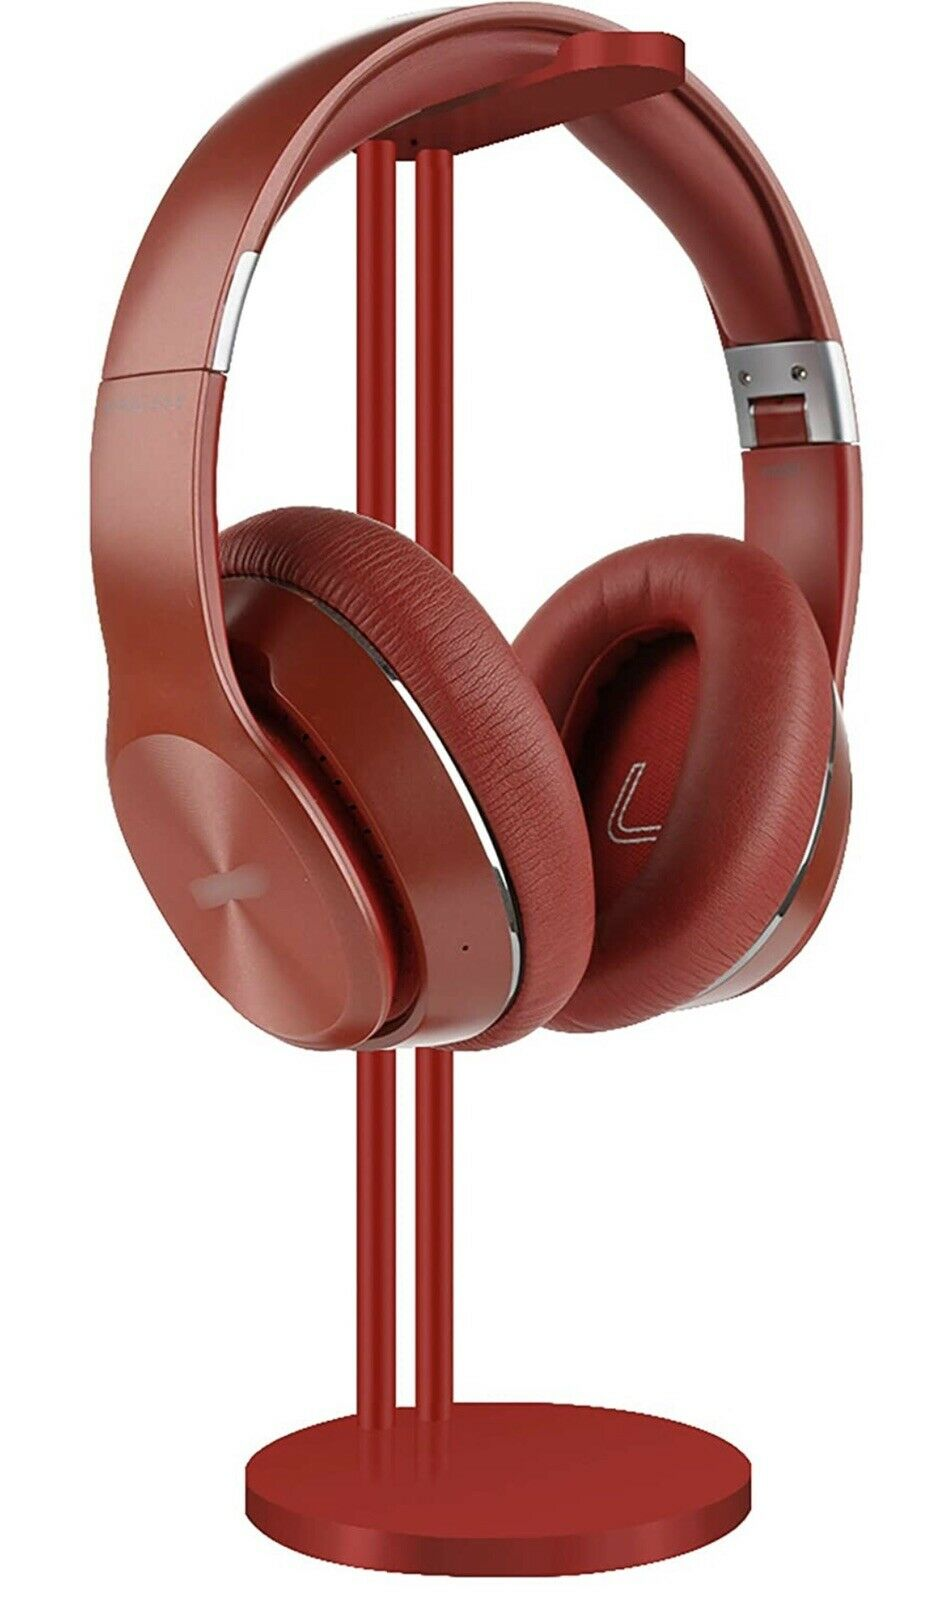 Geekria Aluminum Alloy Headphones Stand Red Colour